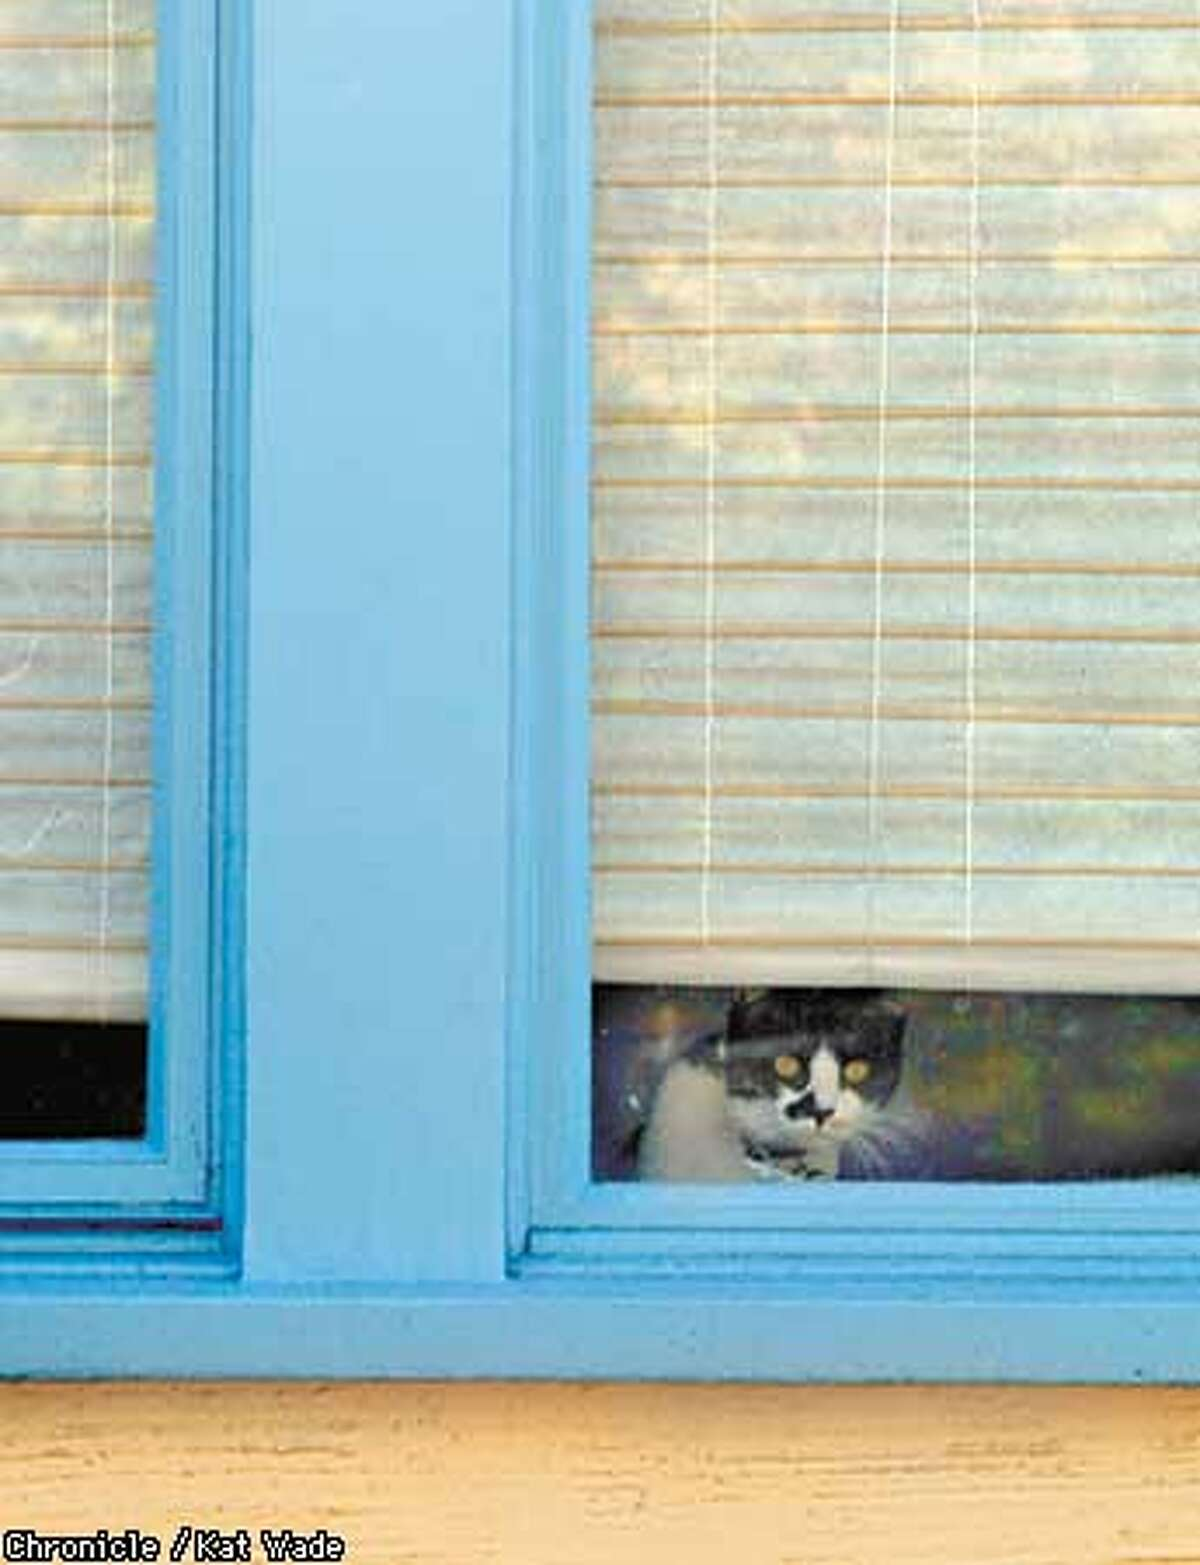 Edna the cat peeks out from Ella Hirst's (CQ) Oakland home is painted in Kelly Moore yellow and blue trim with color consulting by Judy B. Goode of Goode Consulting. SAN FRANCISCO CHRONICLE PHOTO BY KAT WADE